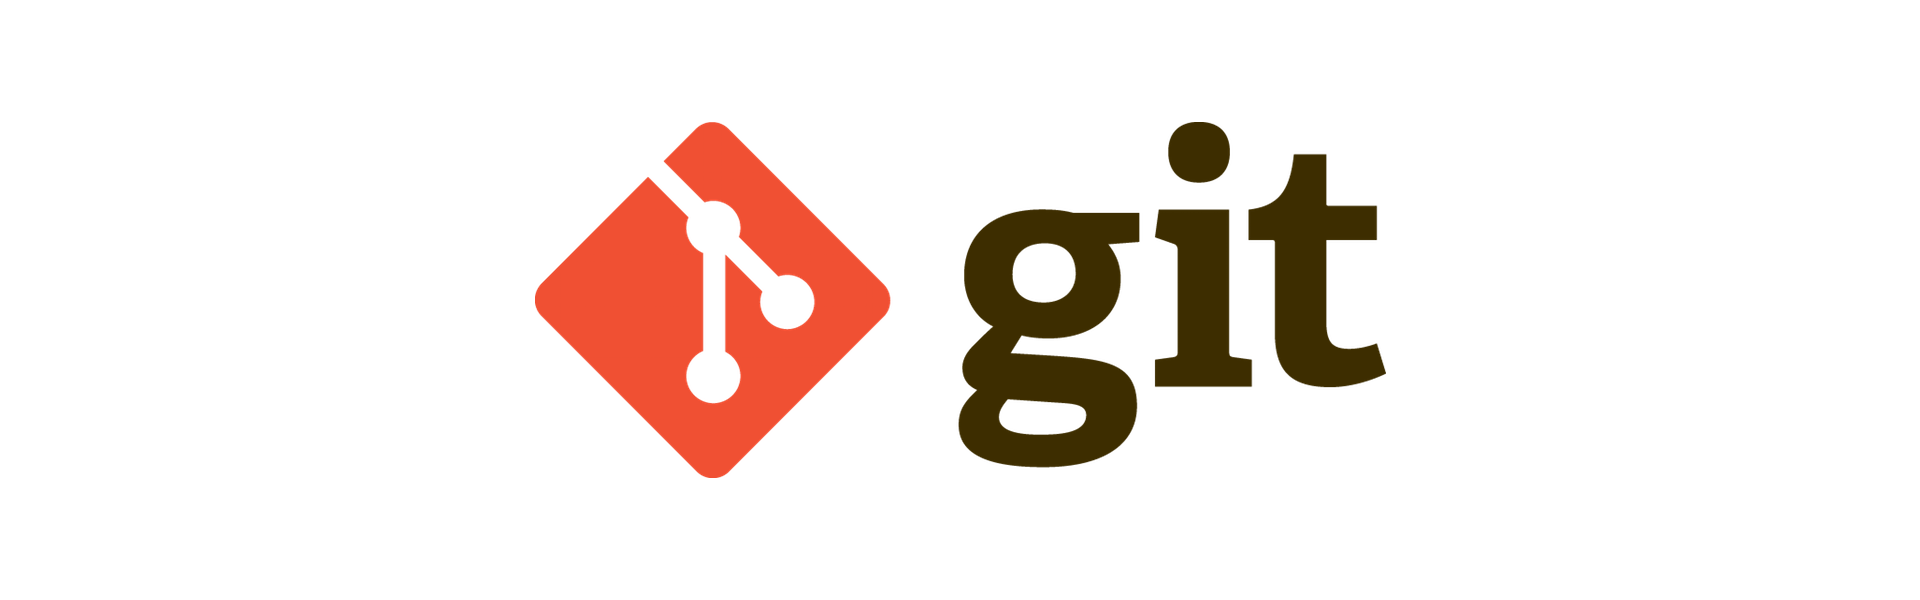 Git commands to keep a fork up to date   Phil Nash